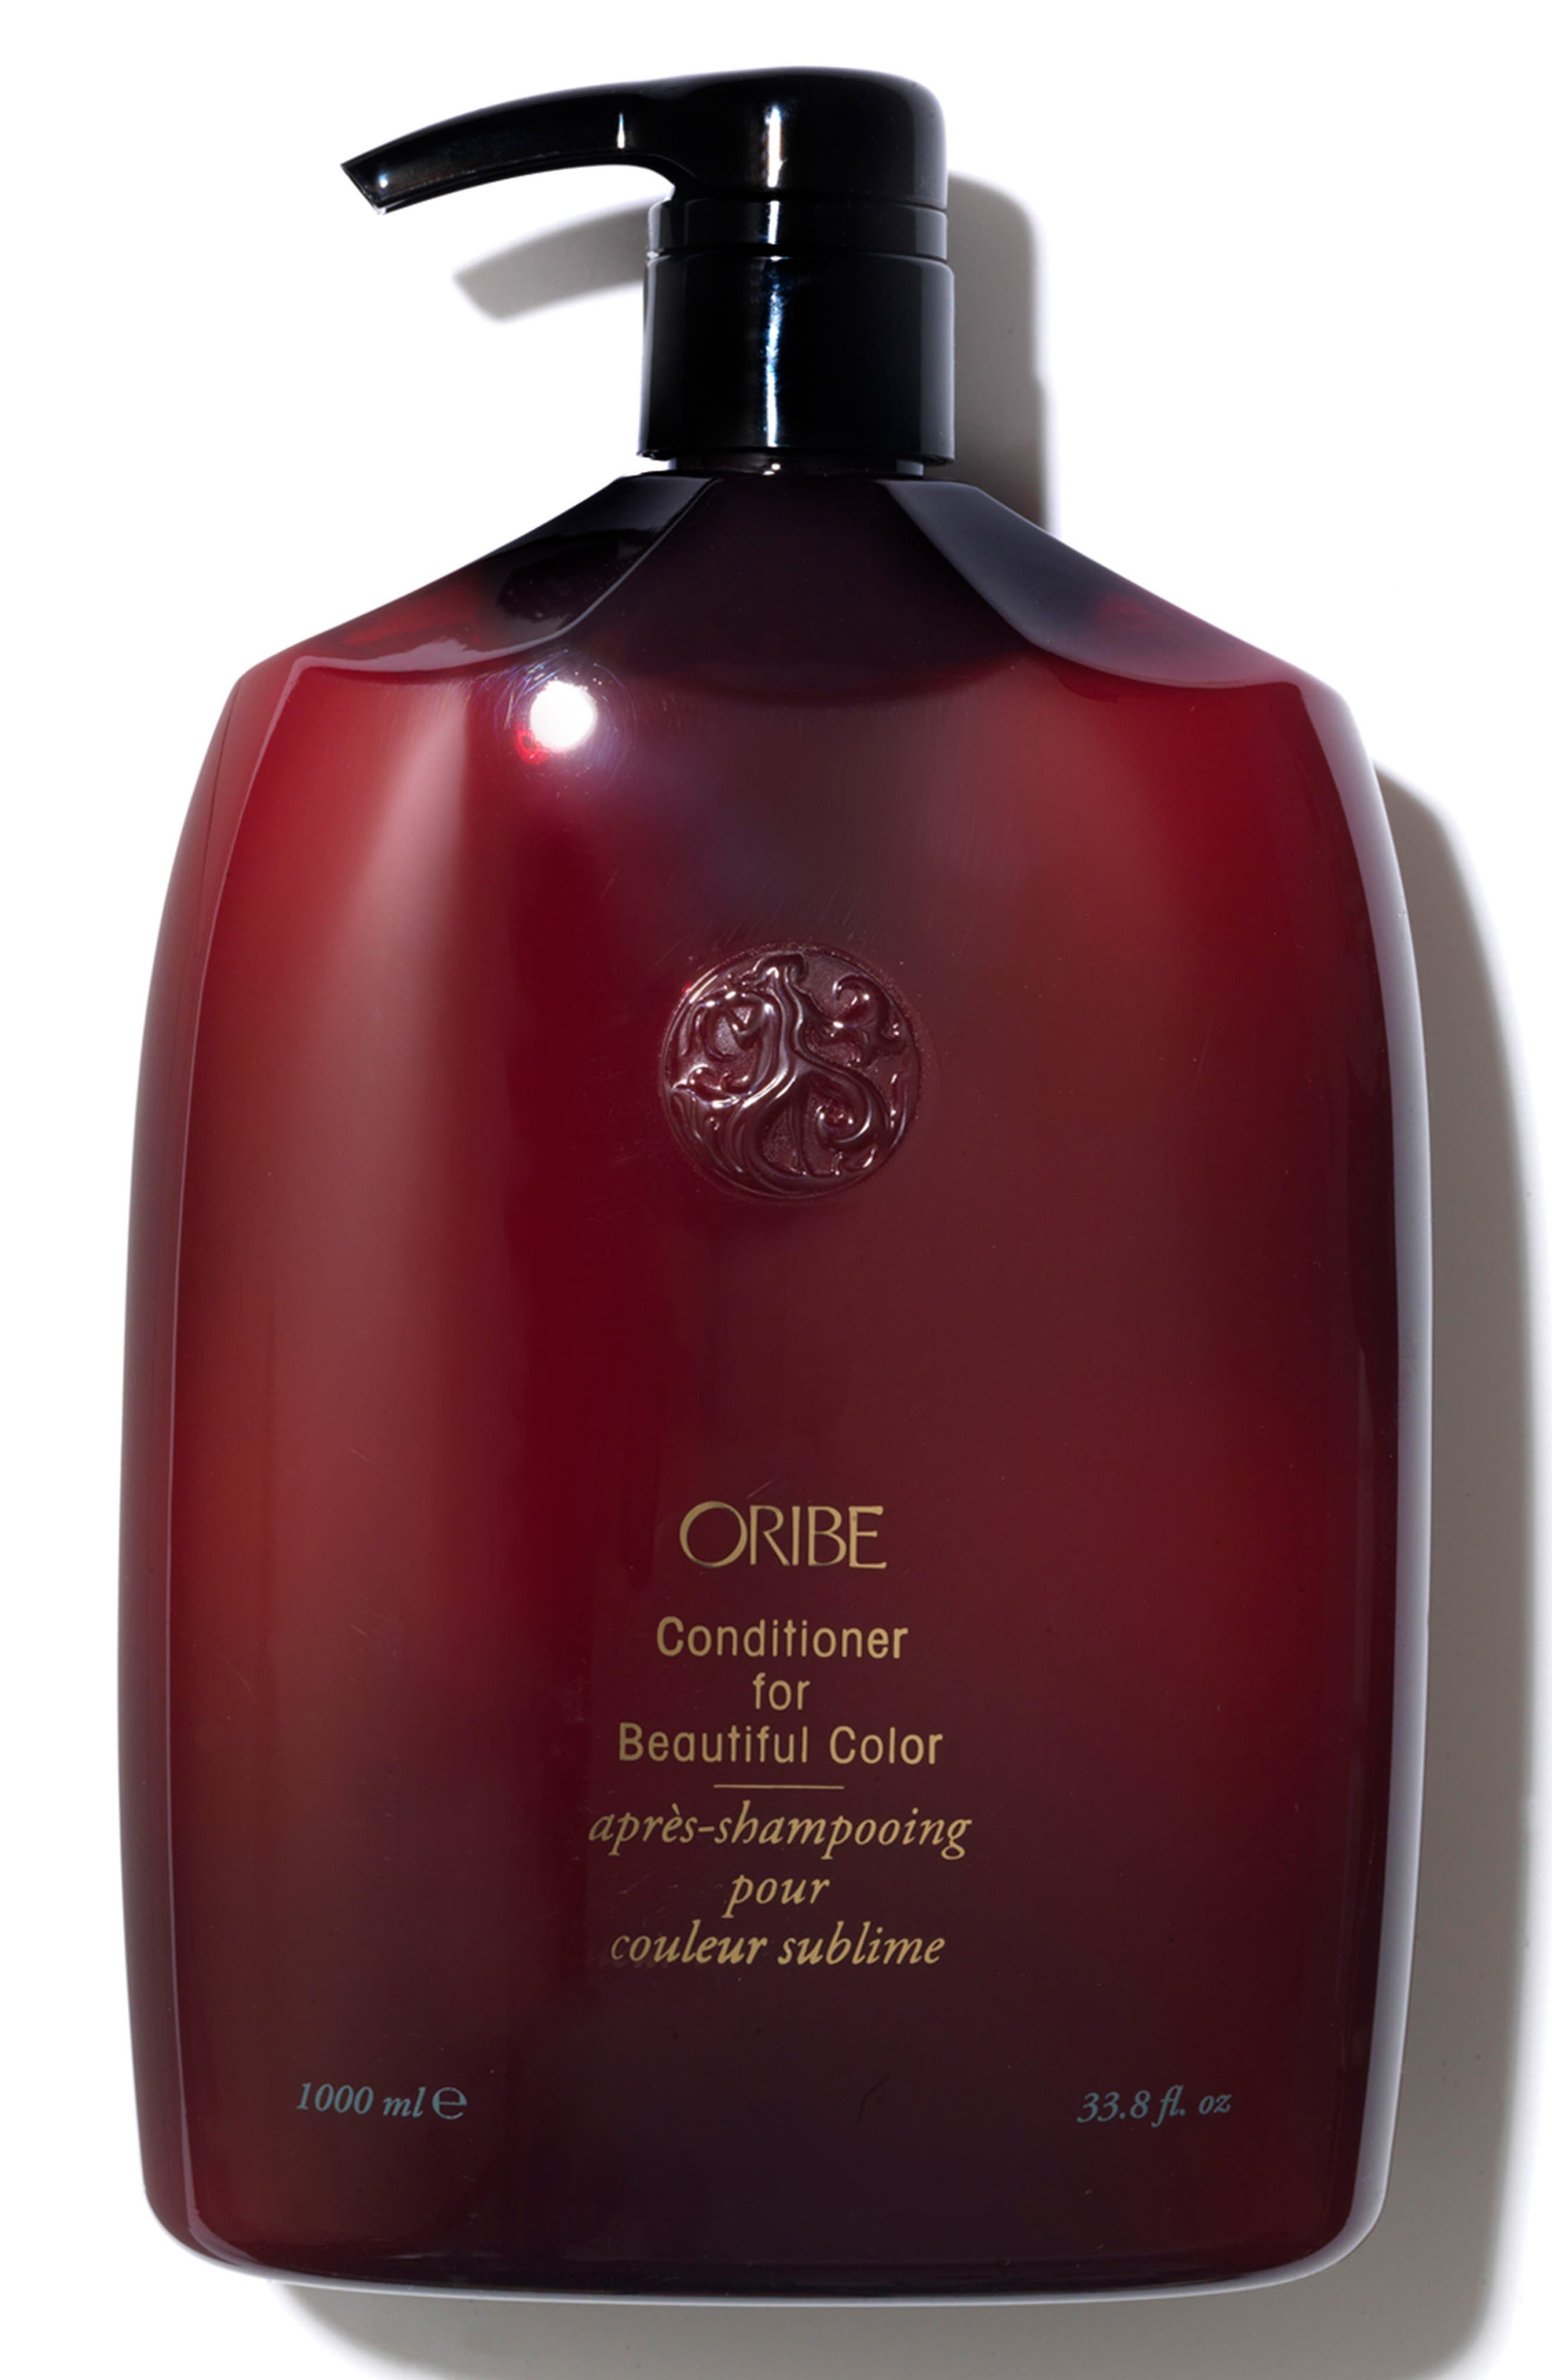 ORIBE SPACE.NK.apothecary Oribe Conditioner for Beautiful Color, Main, color, NO COLOR